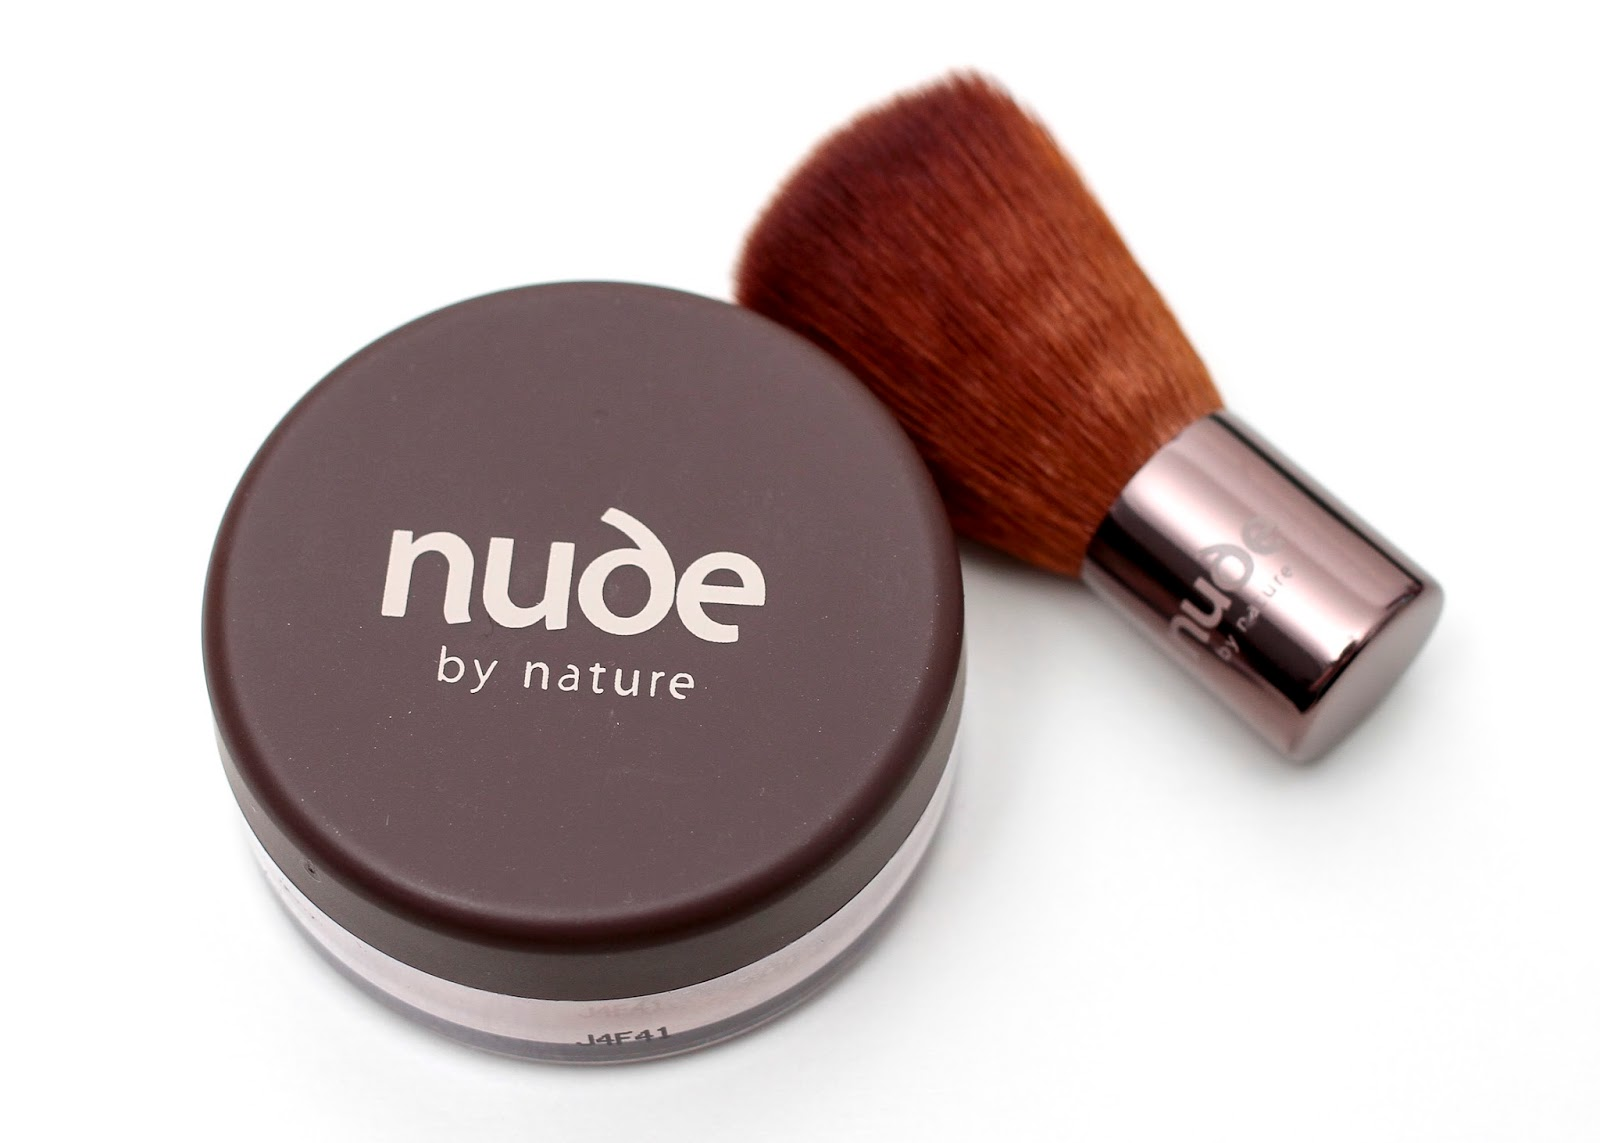 Nude by Nature Light with brush